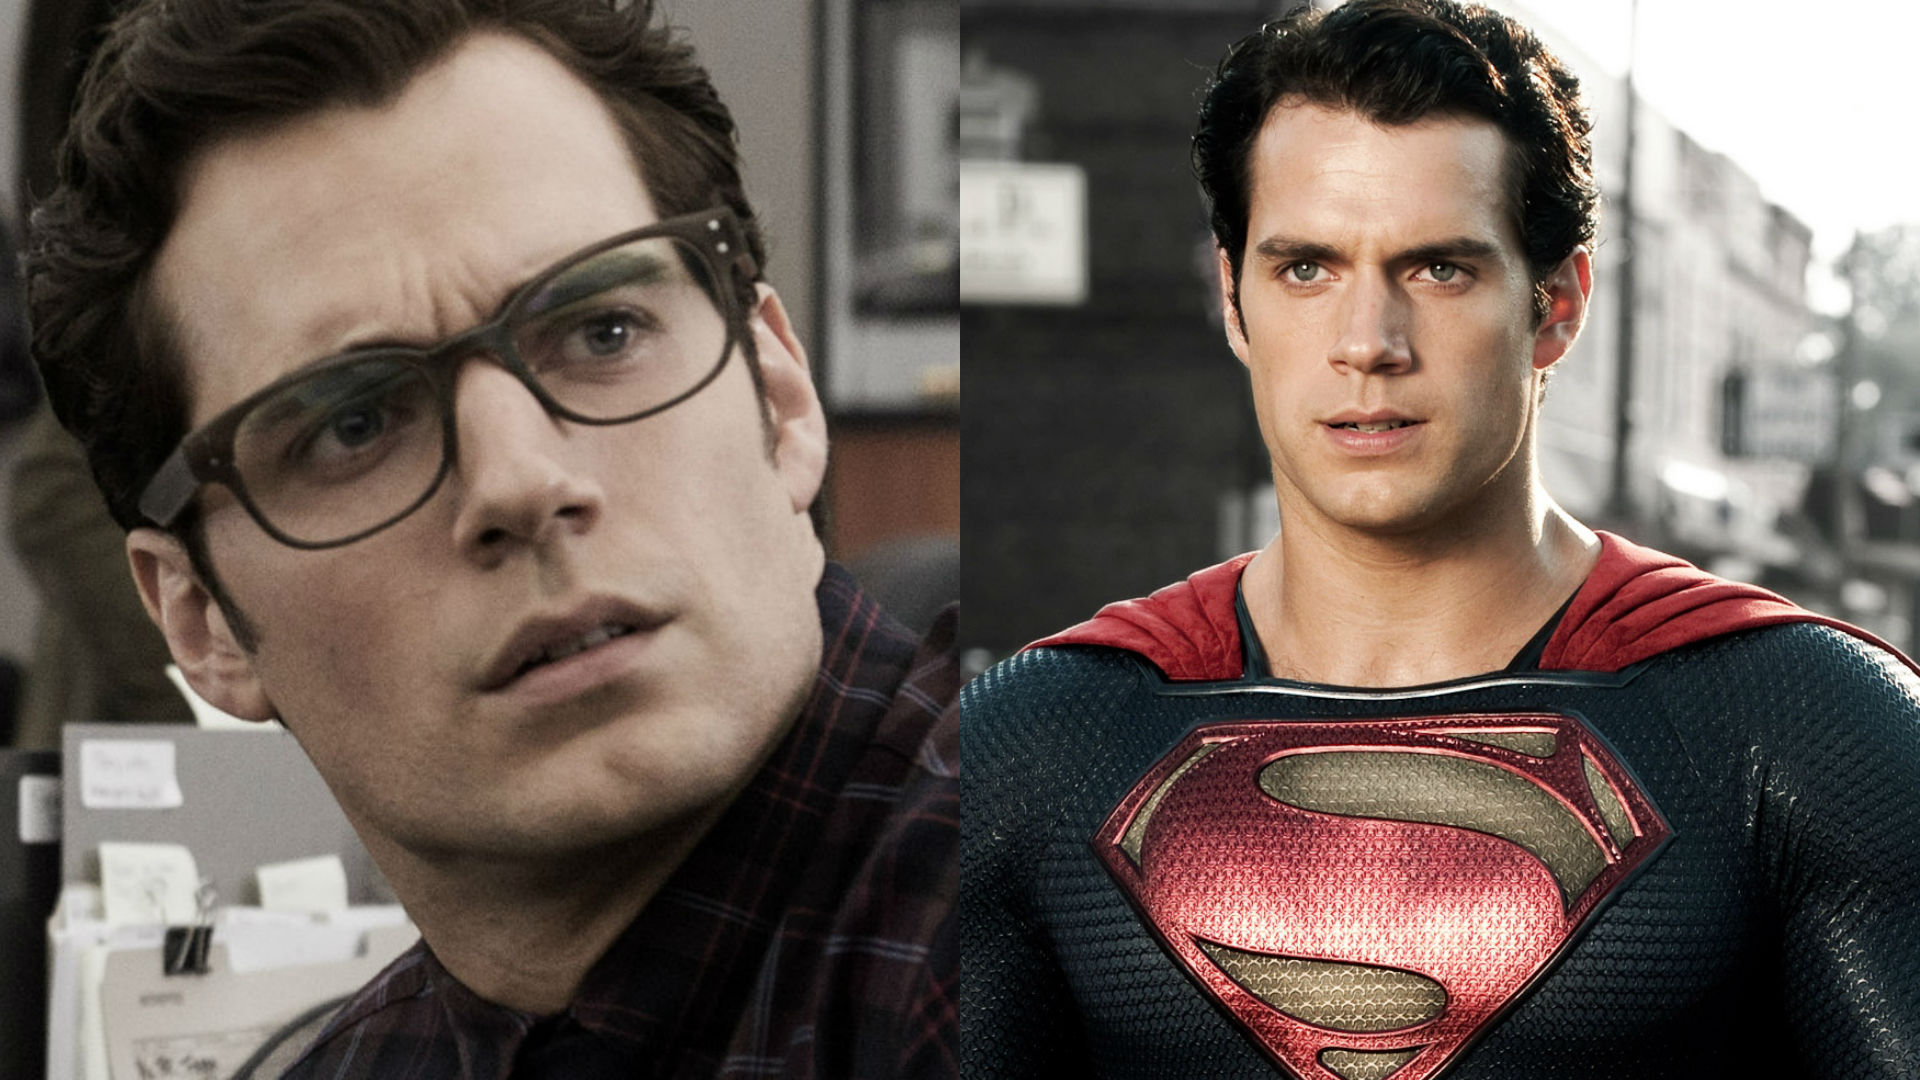 Henry Cavill as Clark Kent and Superman